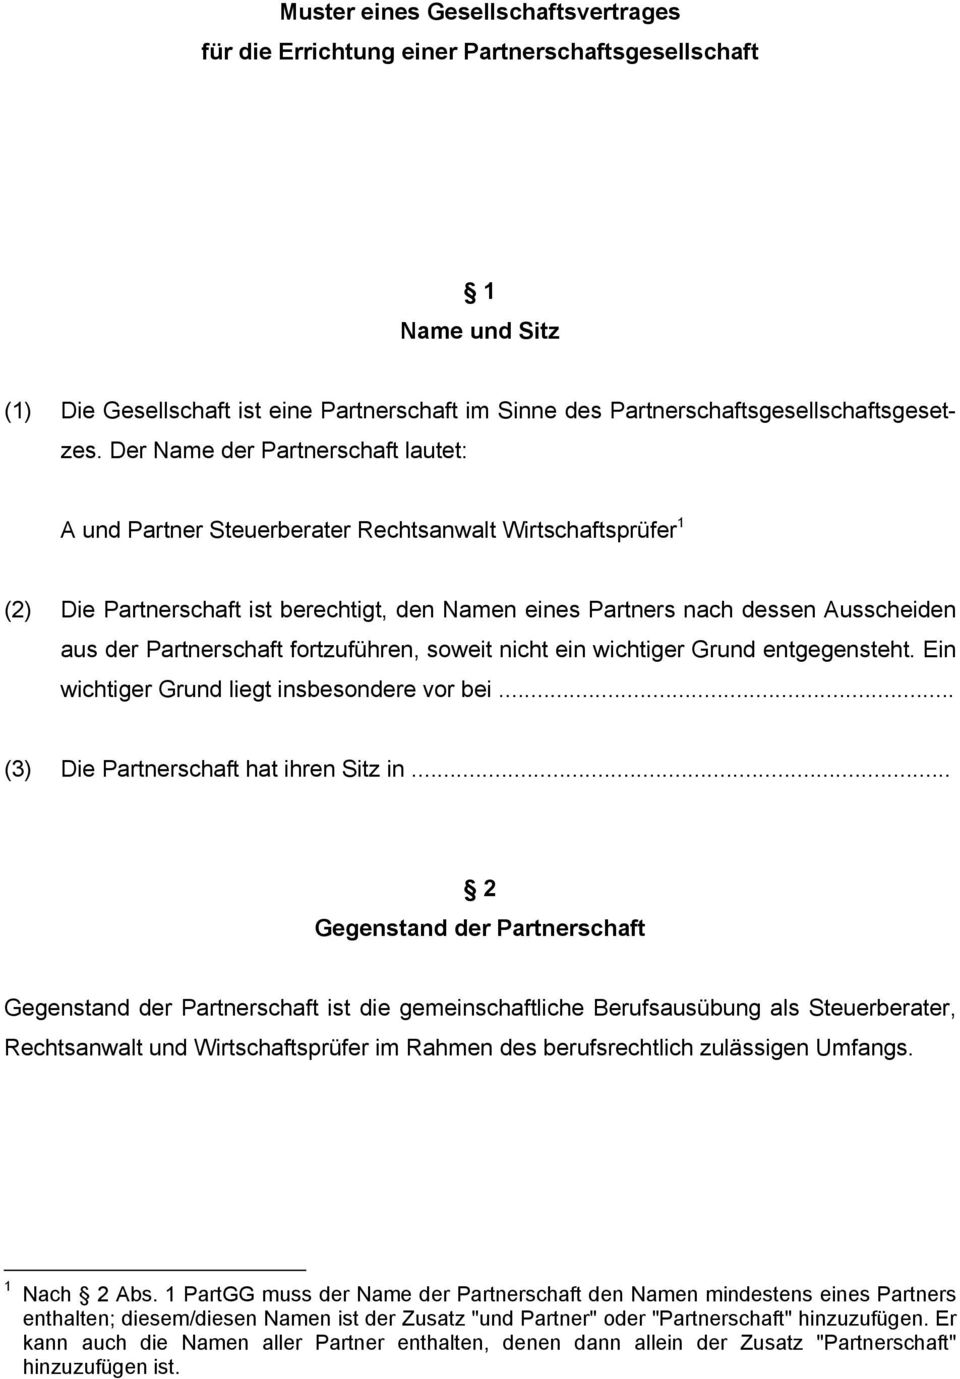 Beste Steuerberater Lebenslauf Tipps Bilder - Entry Level Resume ...